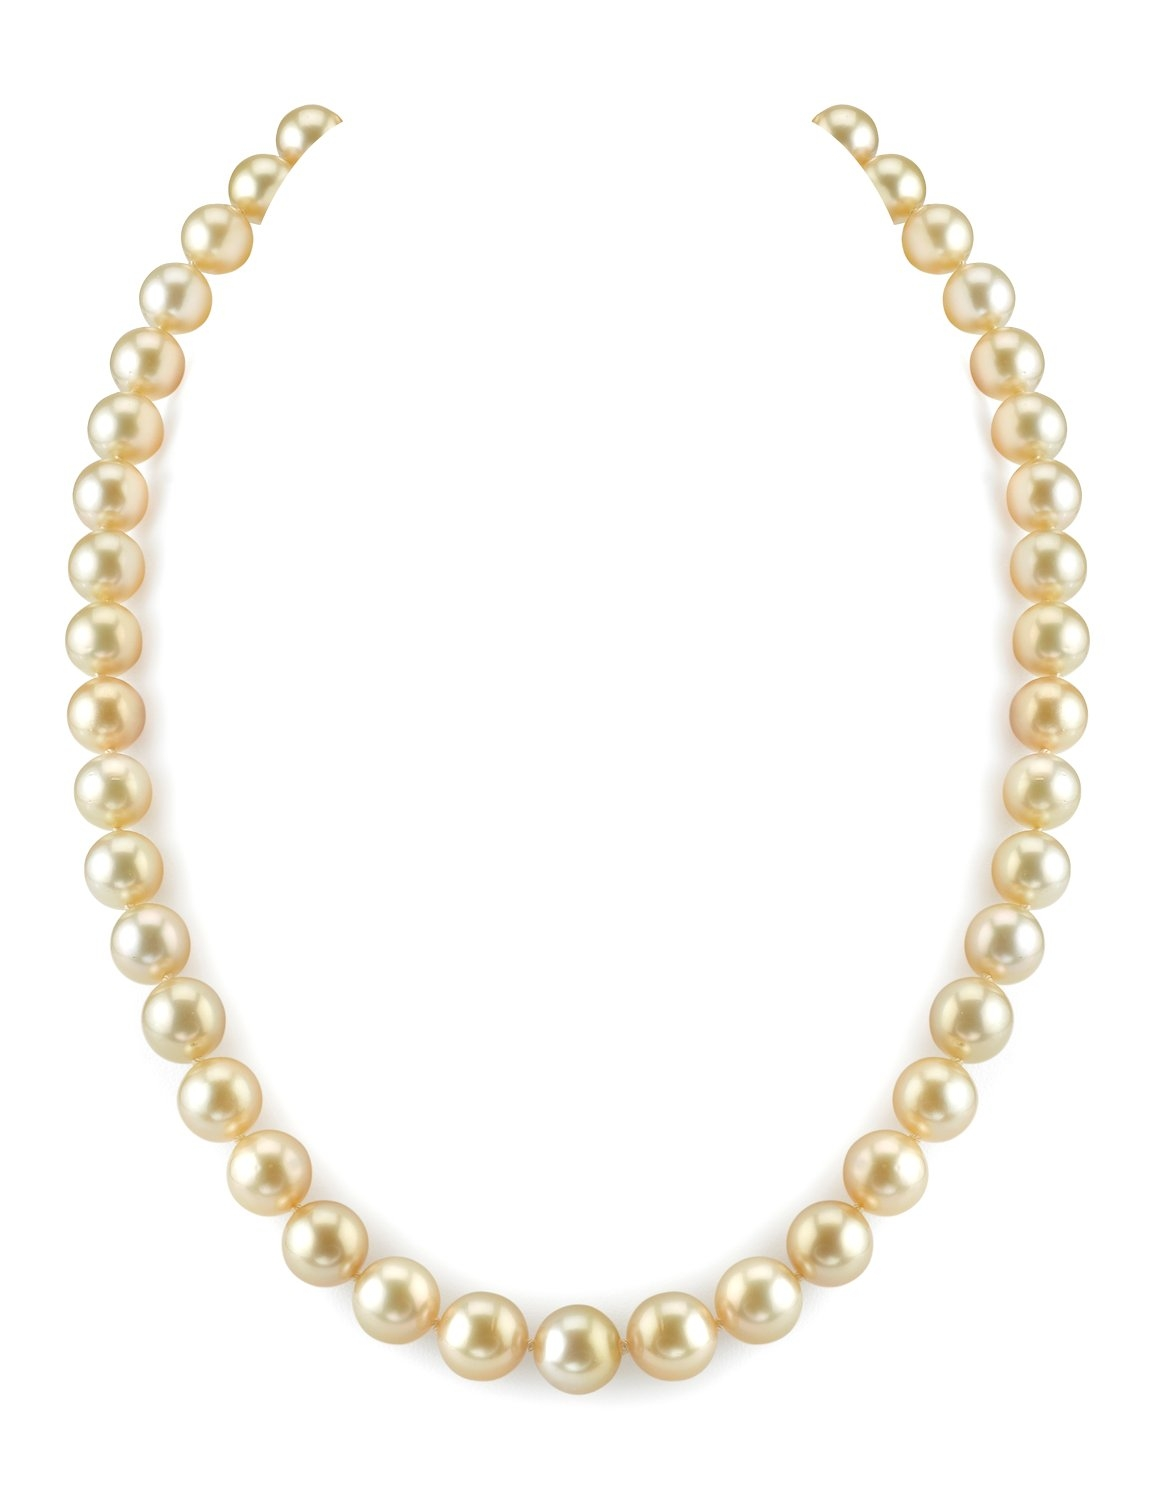 8-10mm Golden South Sea Pearl Necklace